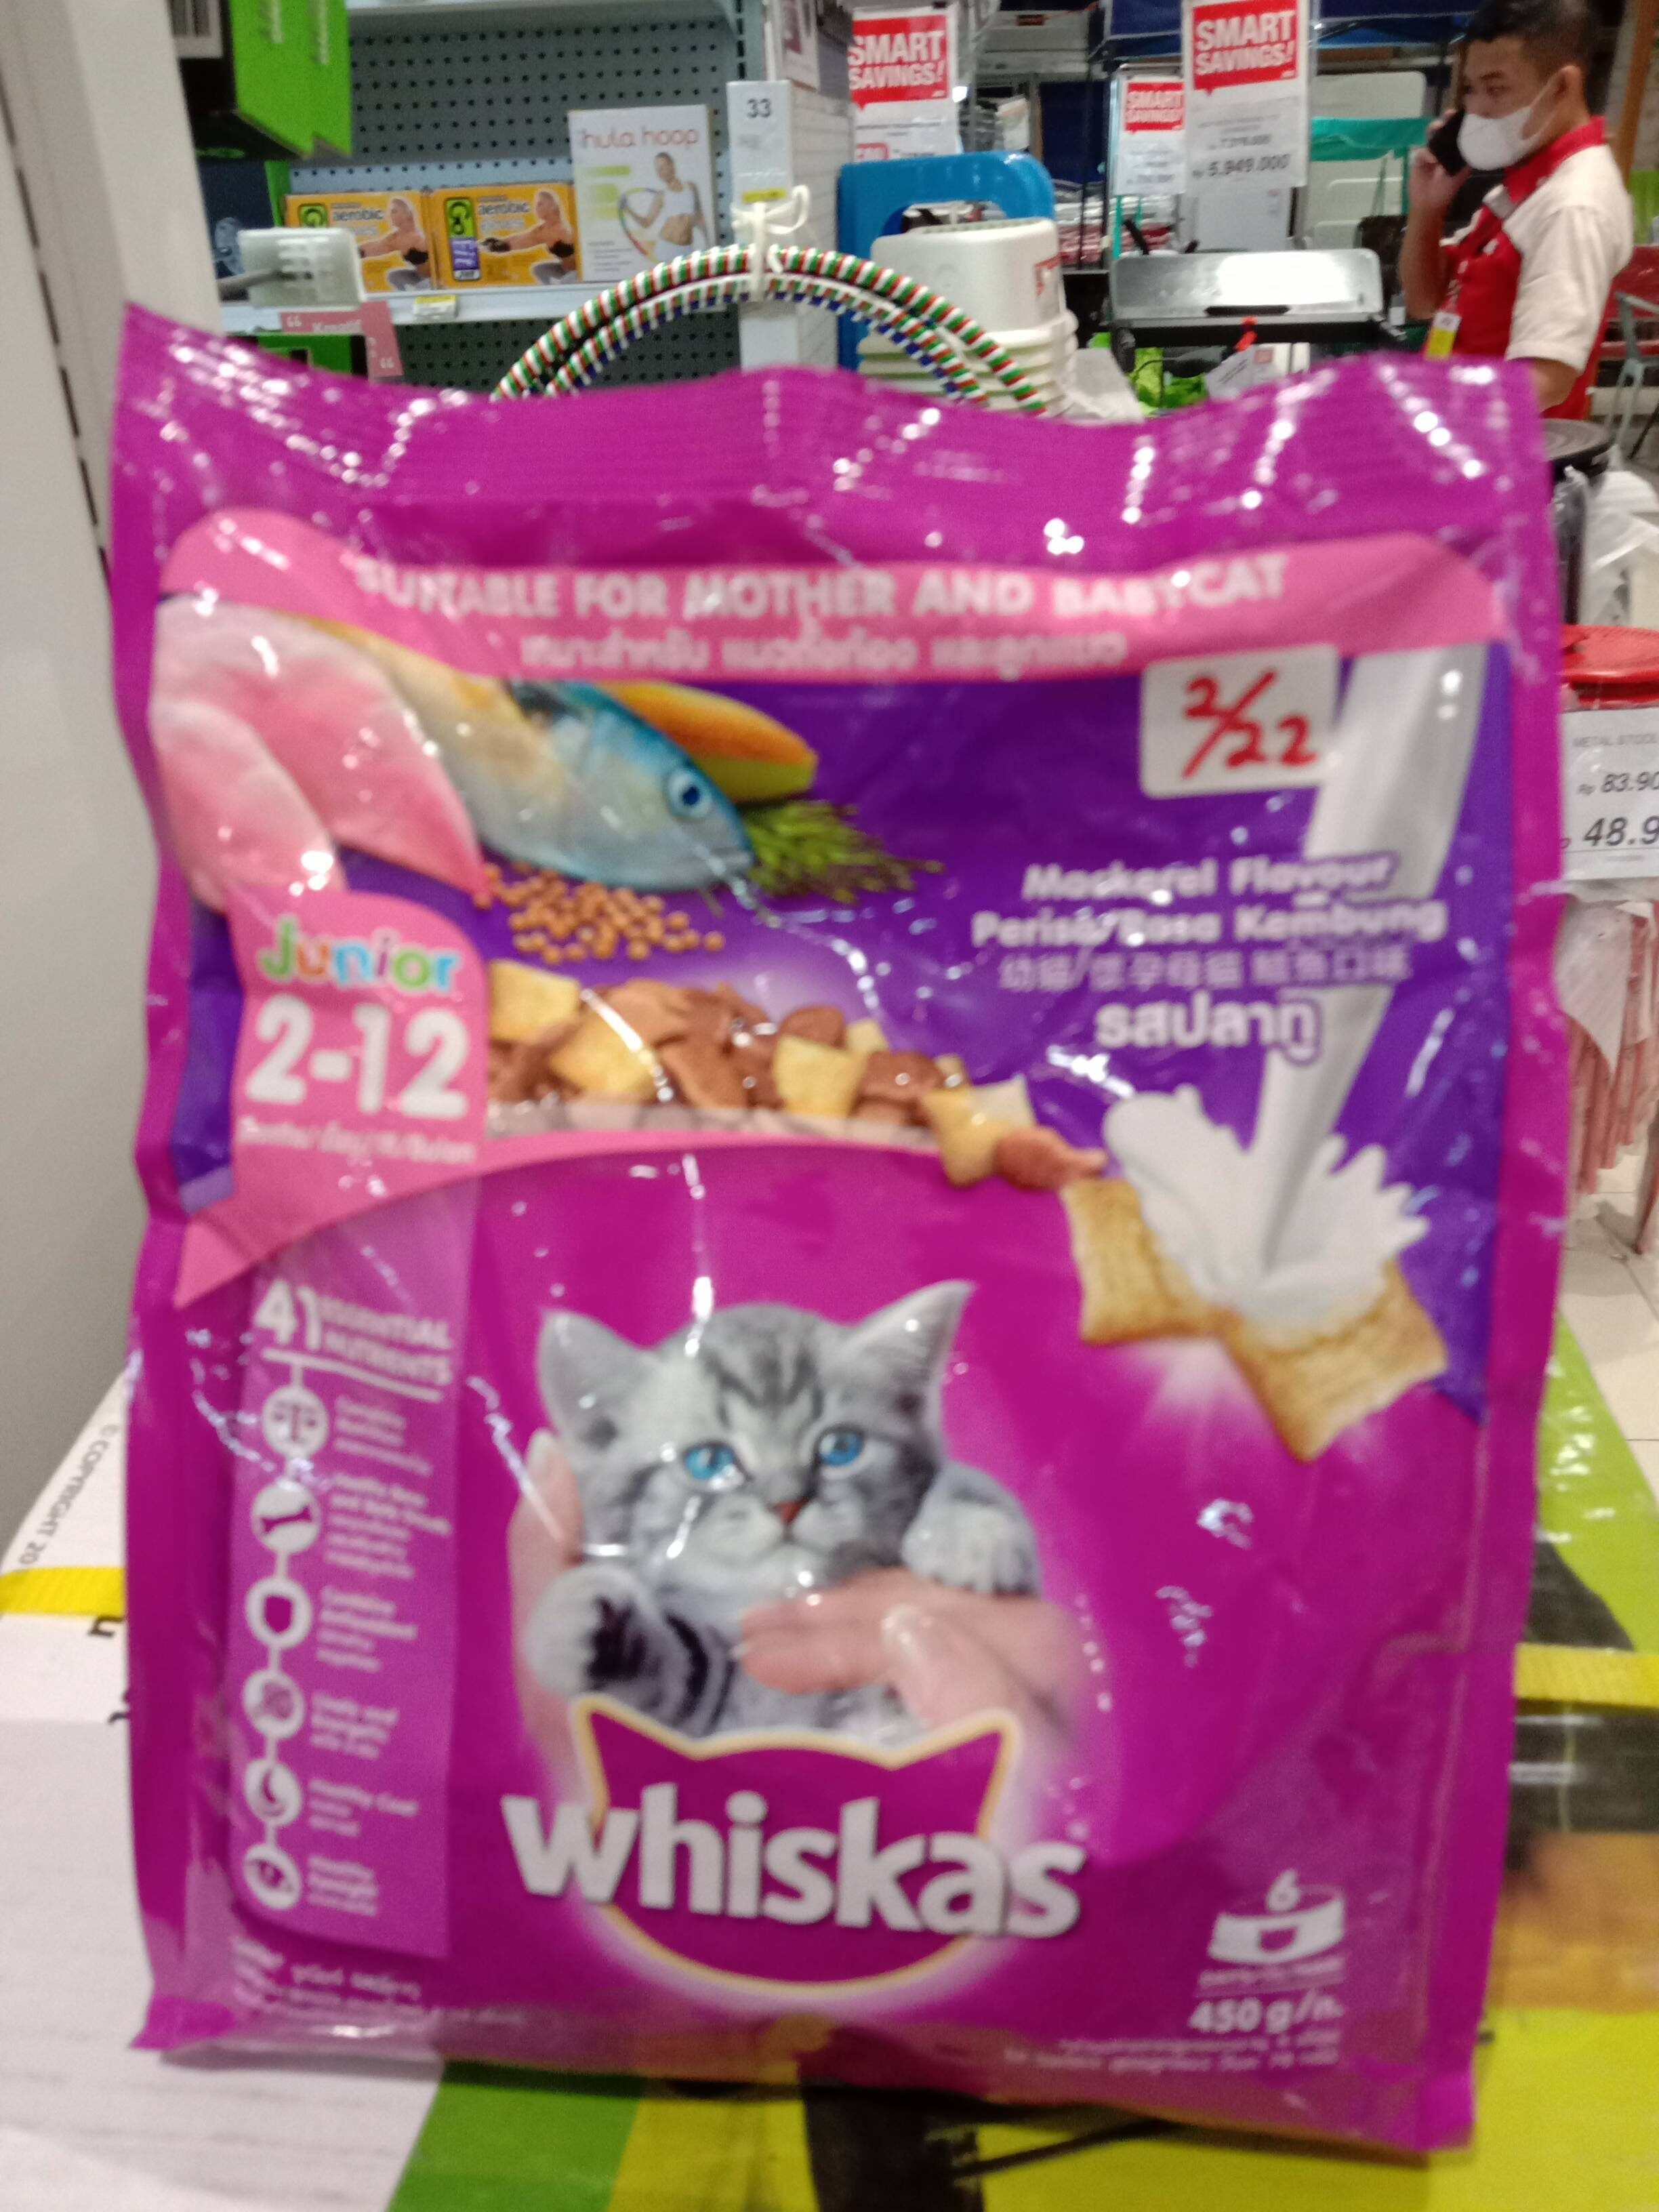 Whiskas Junior mackerel 450Gr - Produk - id